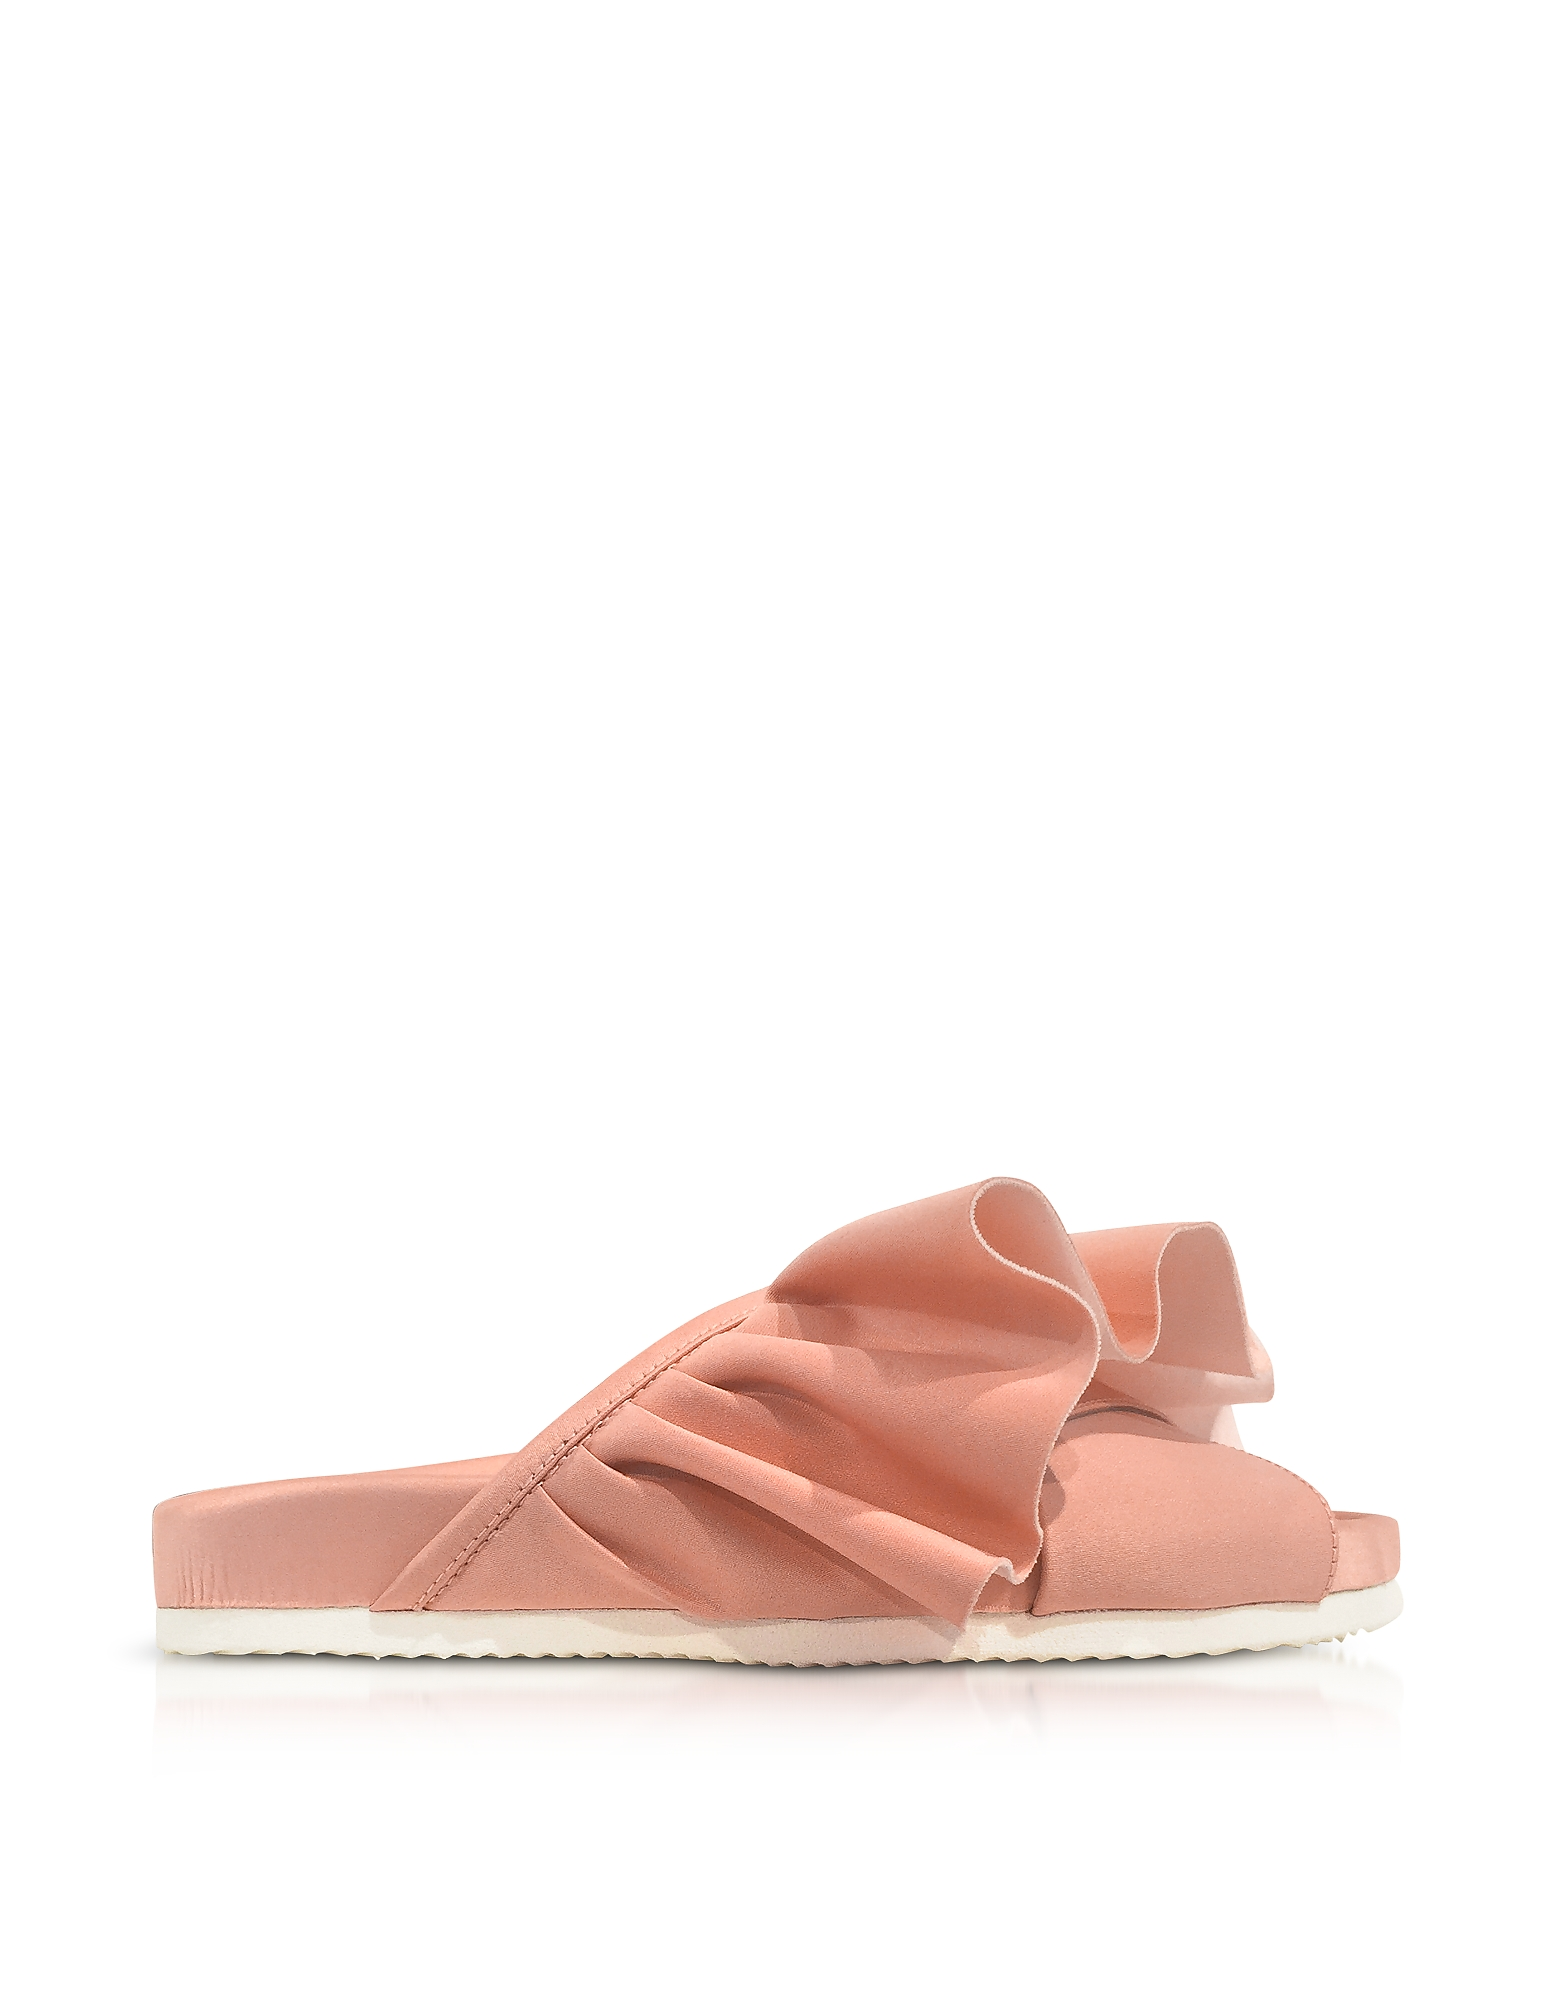 Joshua Sanders Shoes, Pink Satin Ruffle Slide Sandals